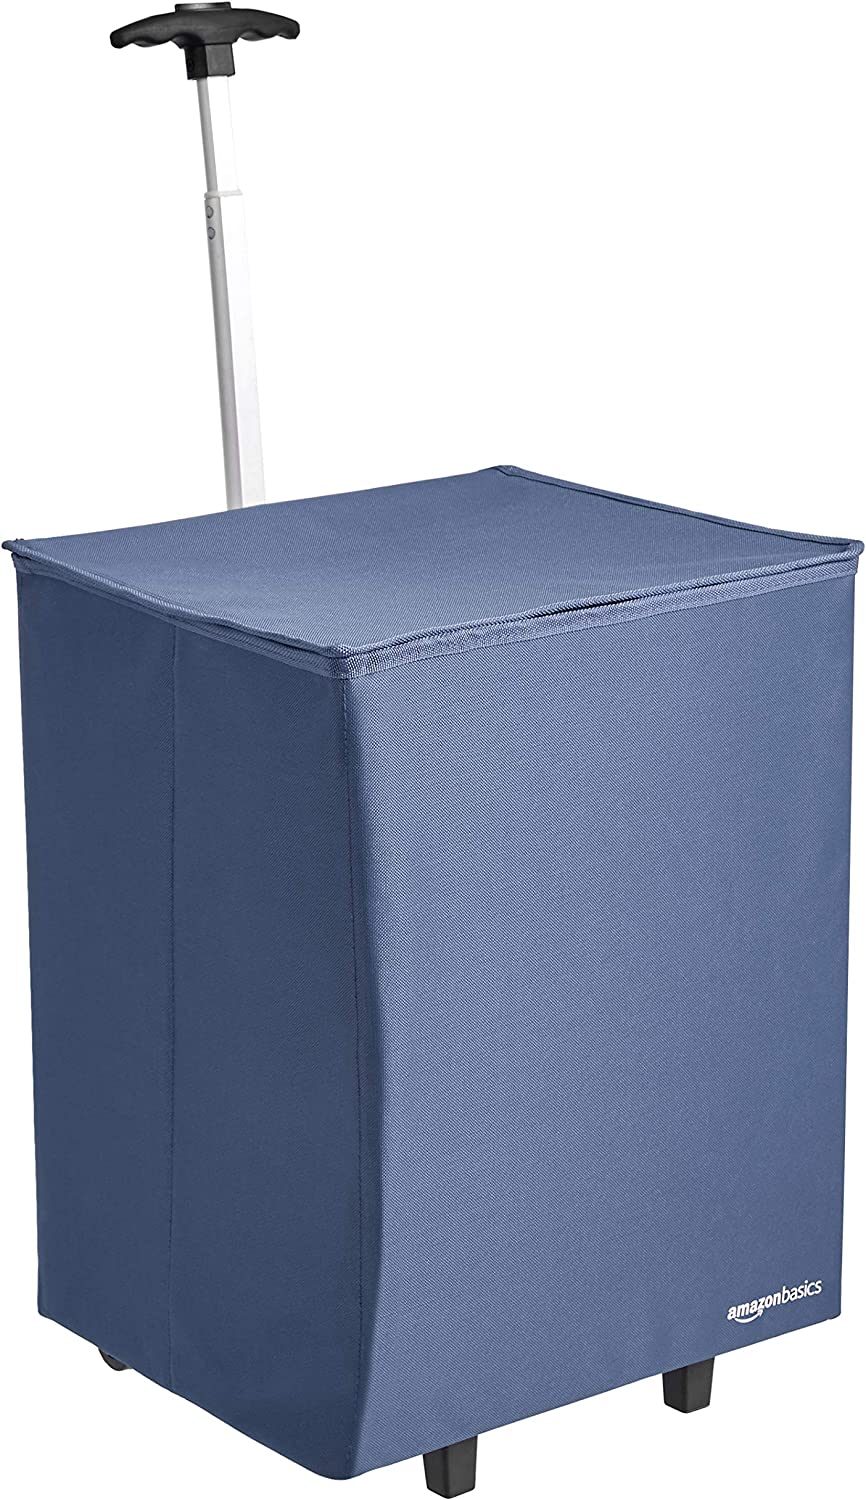 AmazonBasics Collapsible Lightweight Shopping Cart, 40 inch Handle Height, Blue